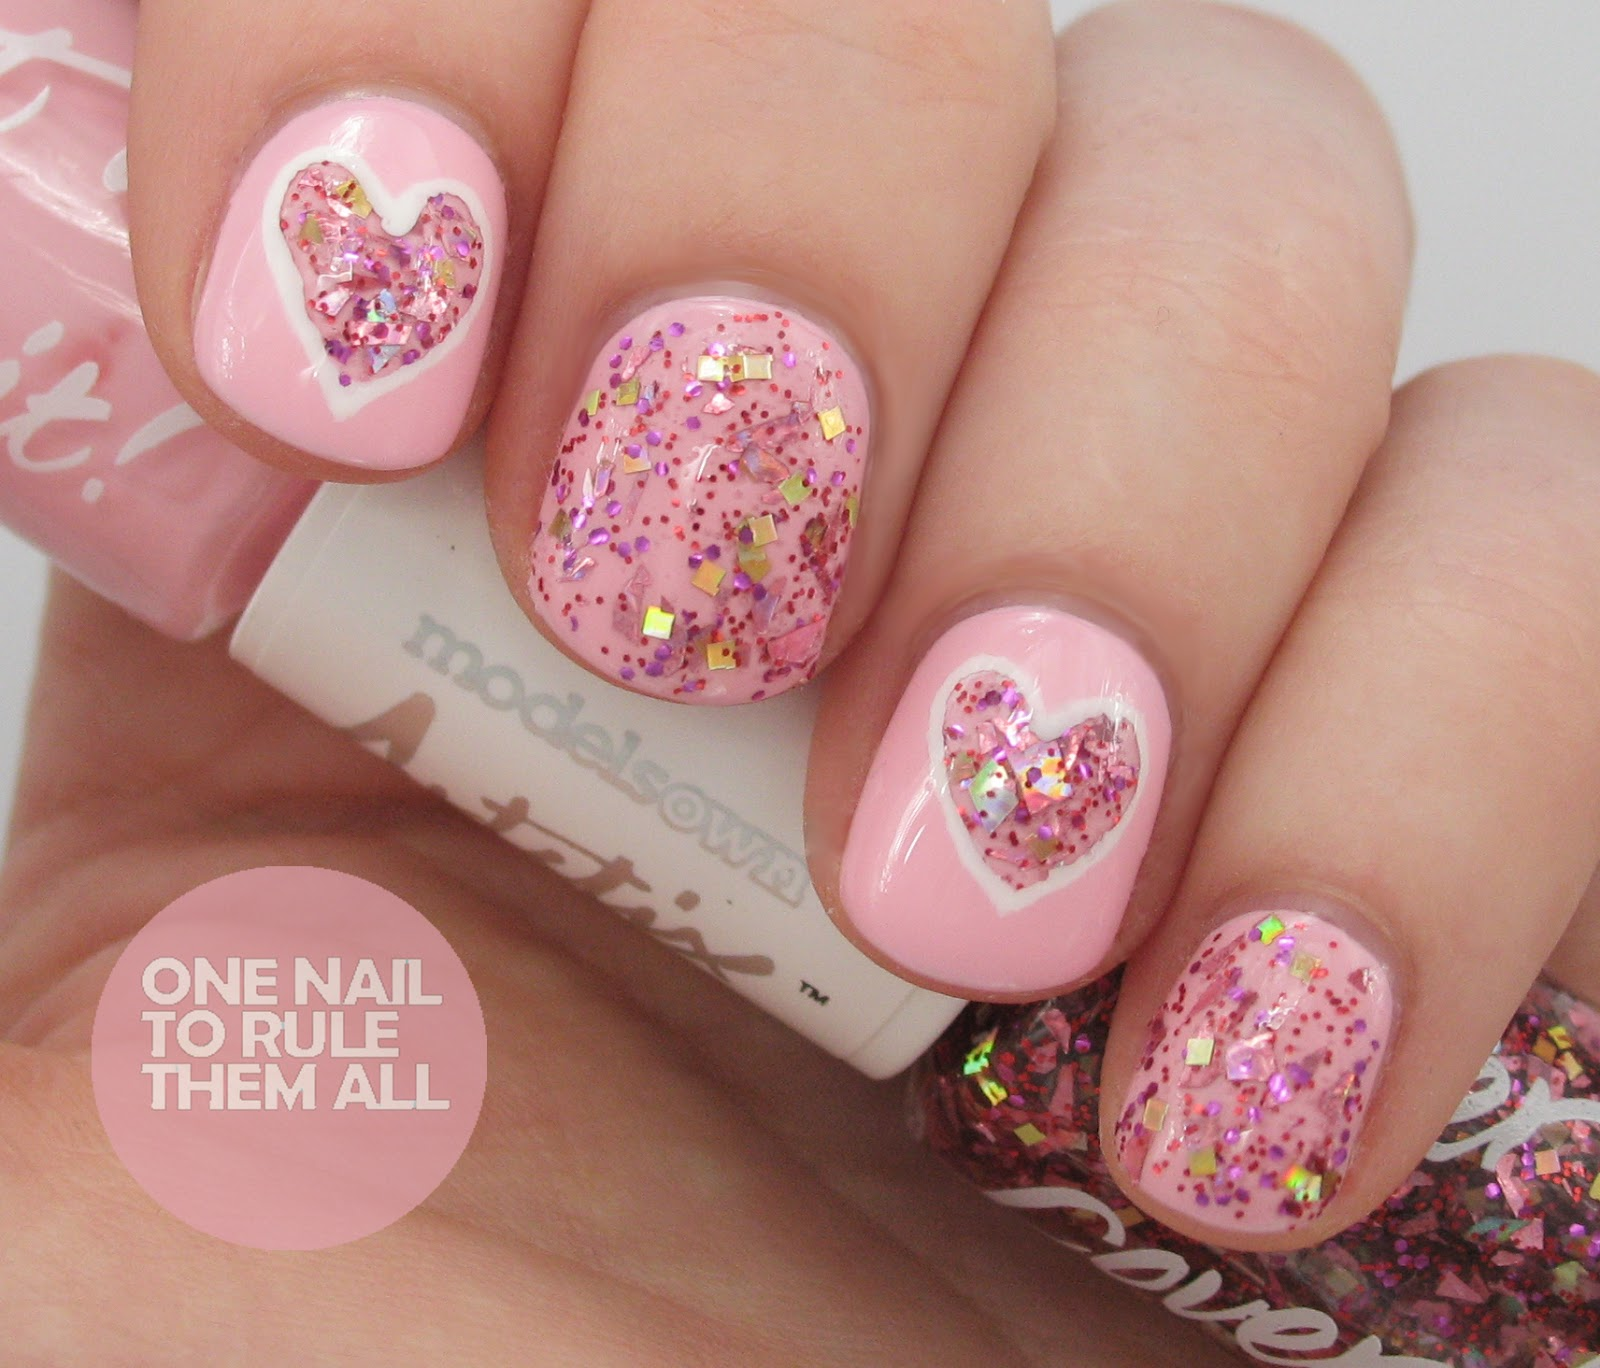 Glitter Nail Art Designs: One Nail To Rule Them All: Models Own Artstix Duo Nail